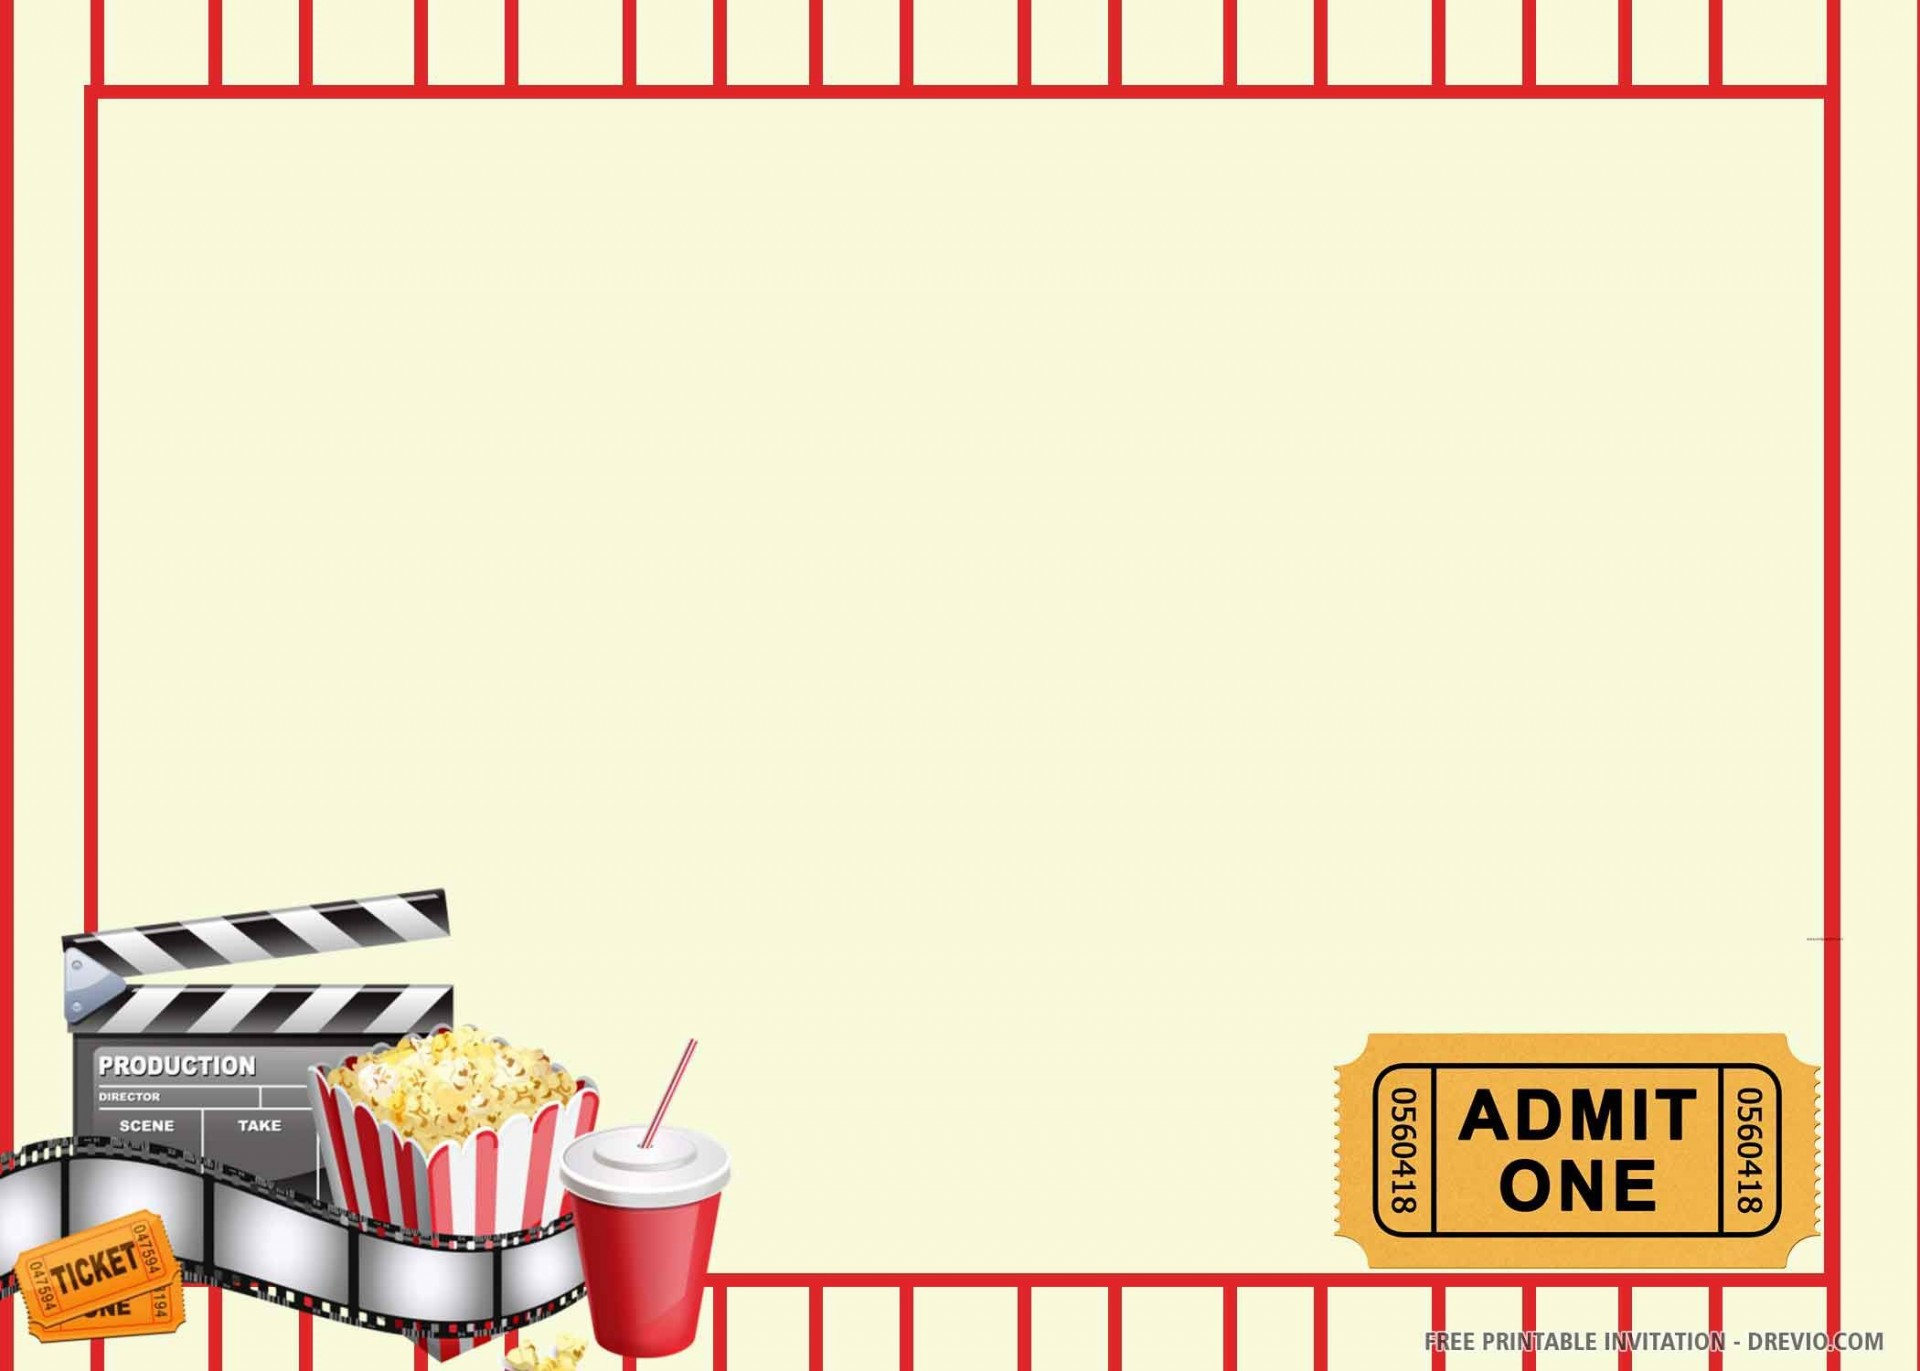 007 Awesome Movie Ticket Invitation Template High Resolution  Blank Free Download Editable Printable1920